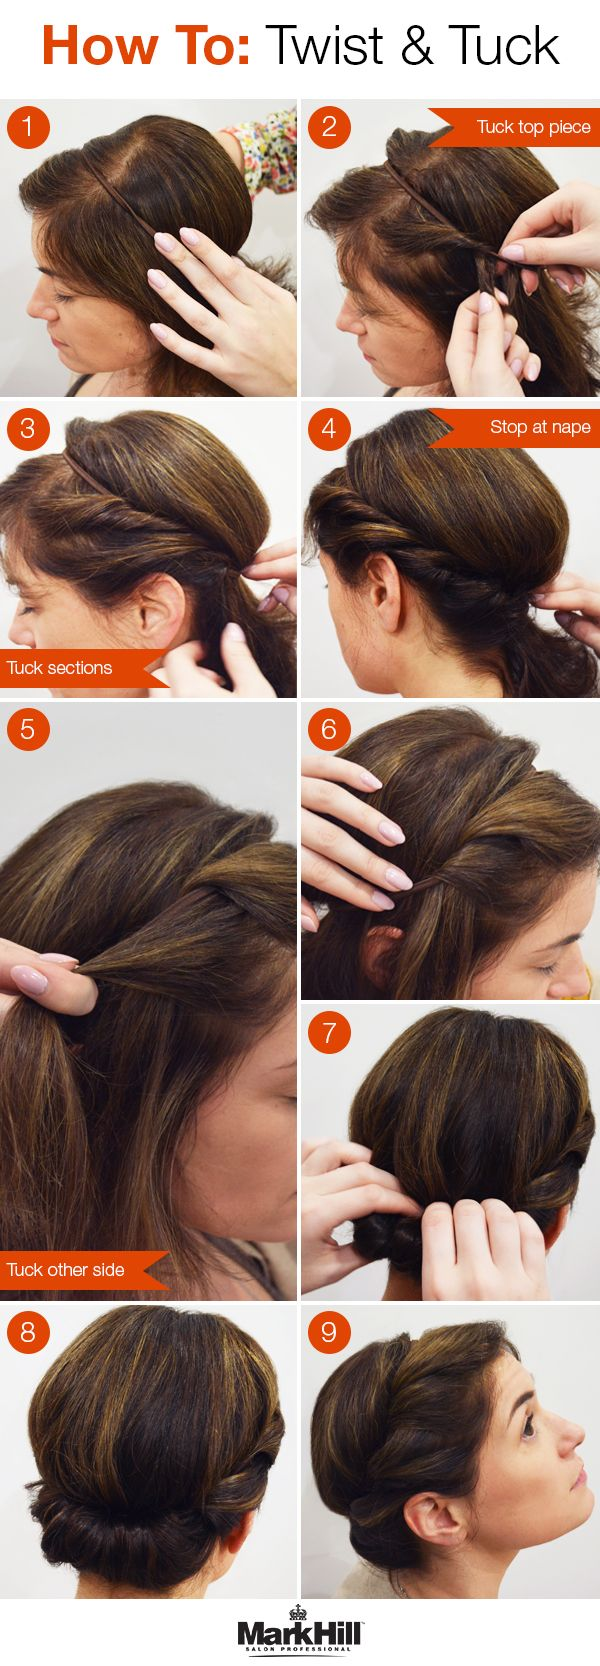 A genius trick to getting an awesome up do —all you need is a thin elastic headband.